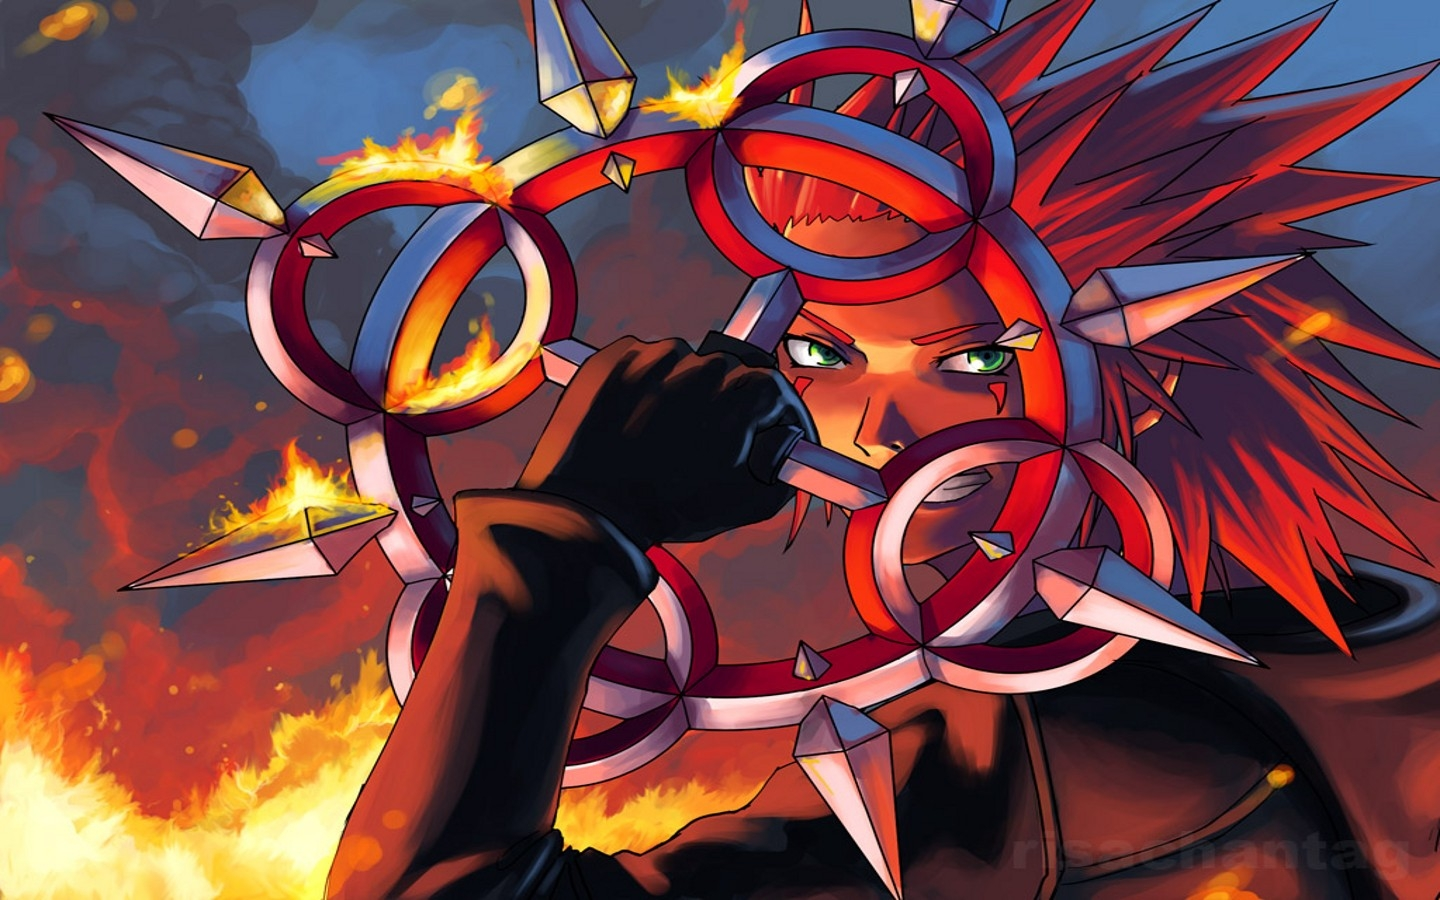 Red White And Blue Car Wallpaper Iphone Kingdom Hearts Axel 1440x900 Wallpaper Video Games